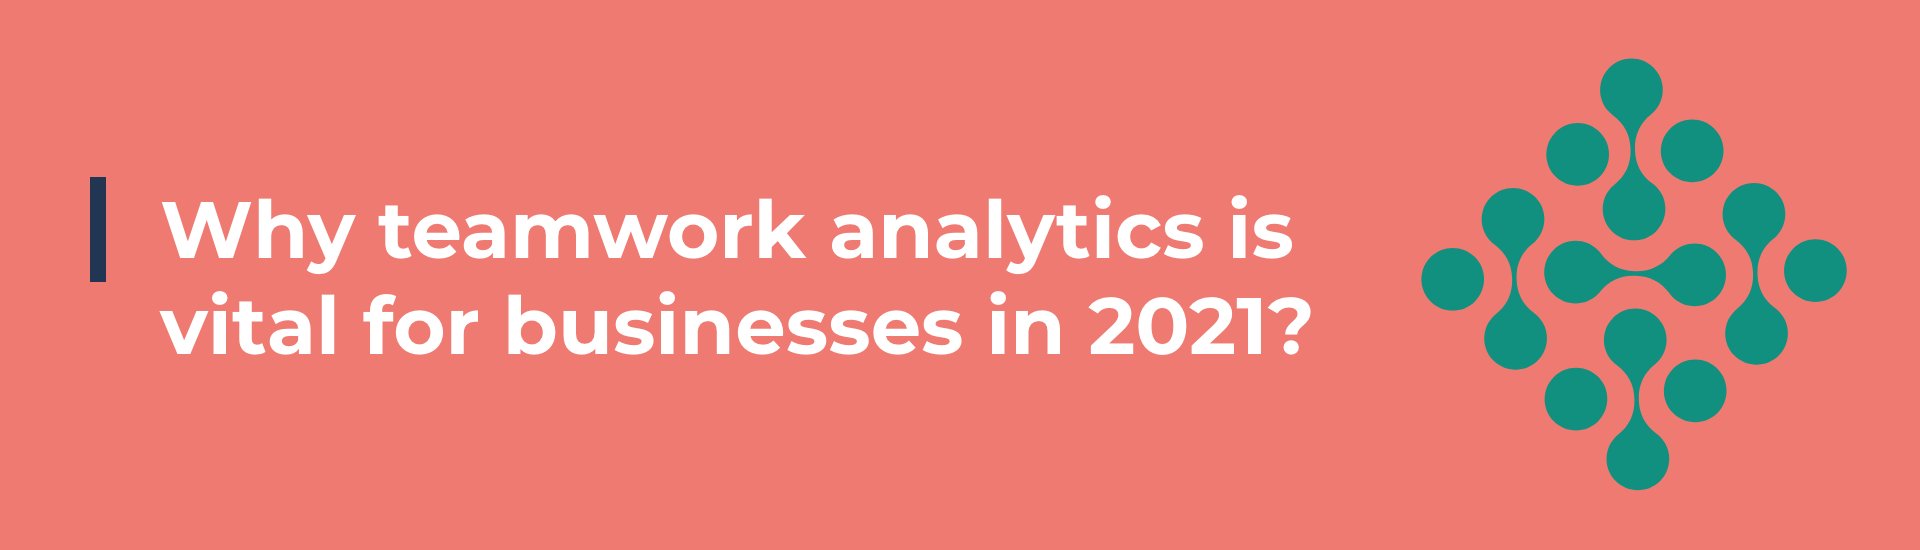 Why teamwork analytics is vital for businesses in 2021?